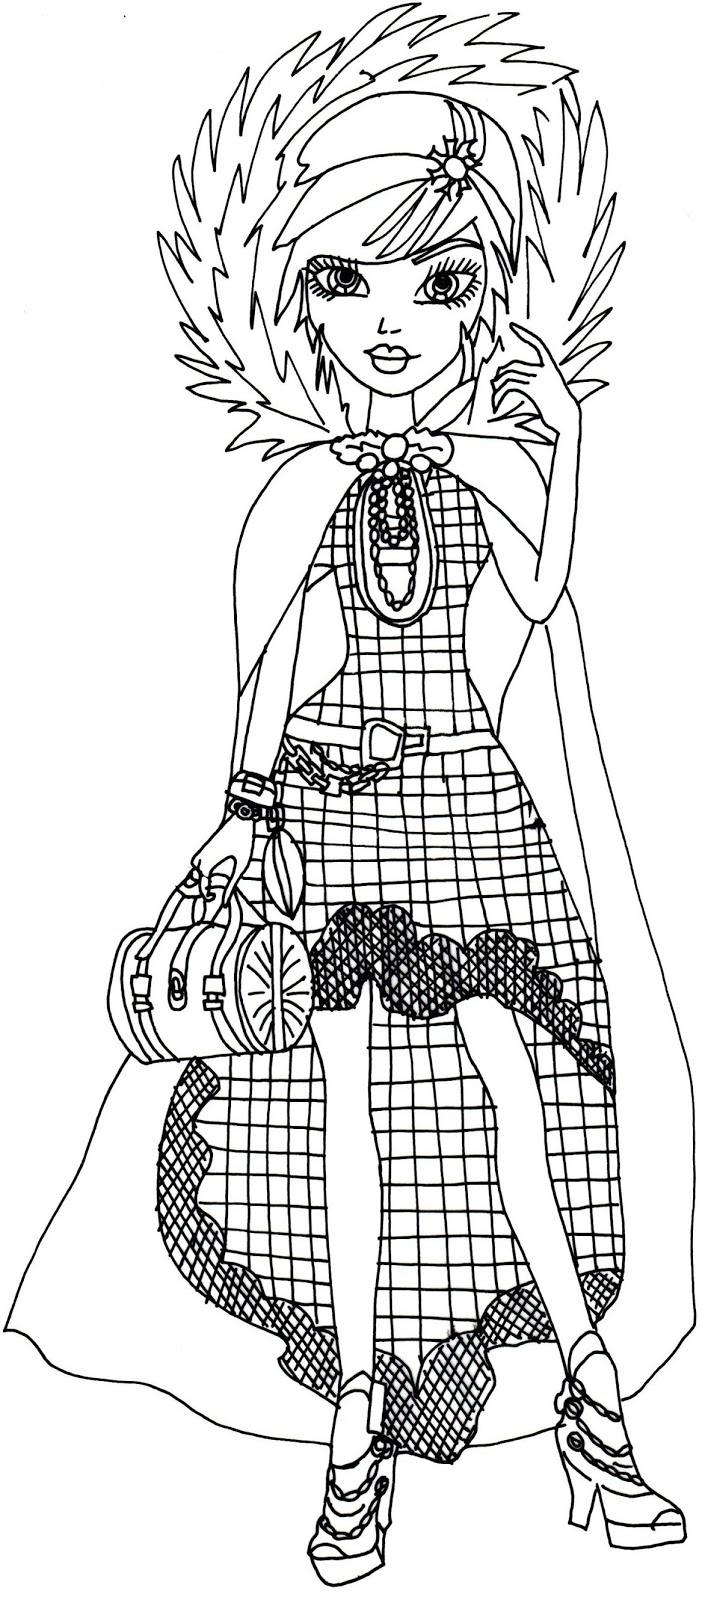 Ever after high coloring pictures - Madeline Coloring Pages Printable Coloringdownload